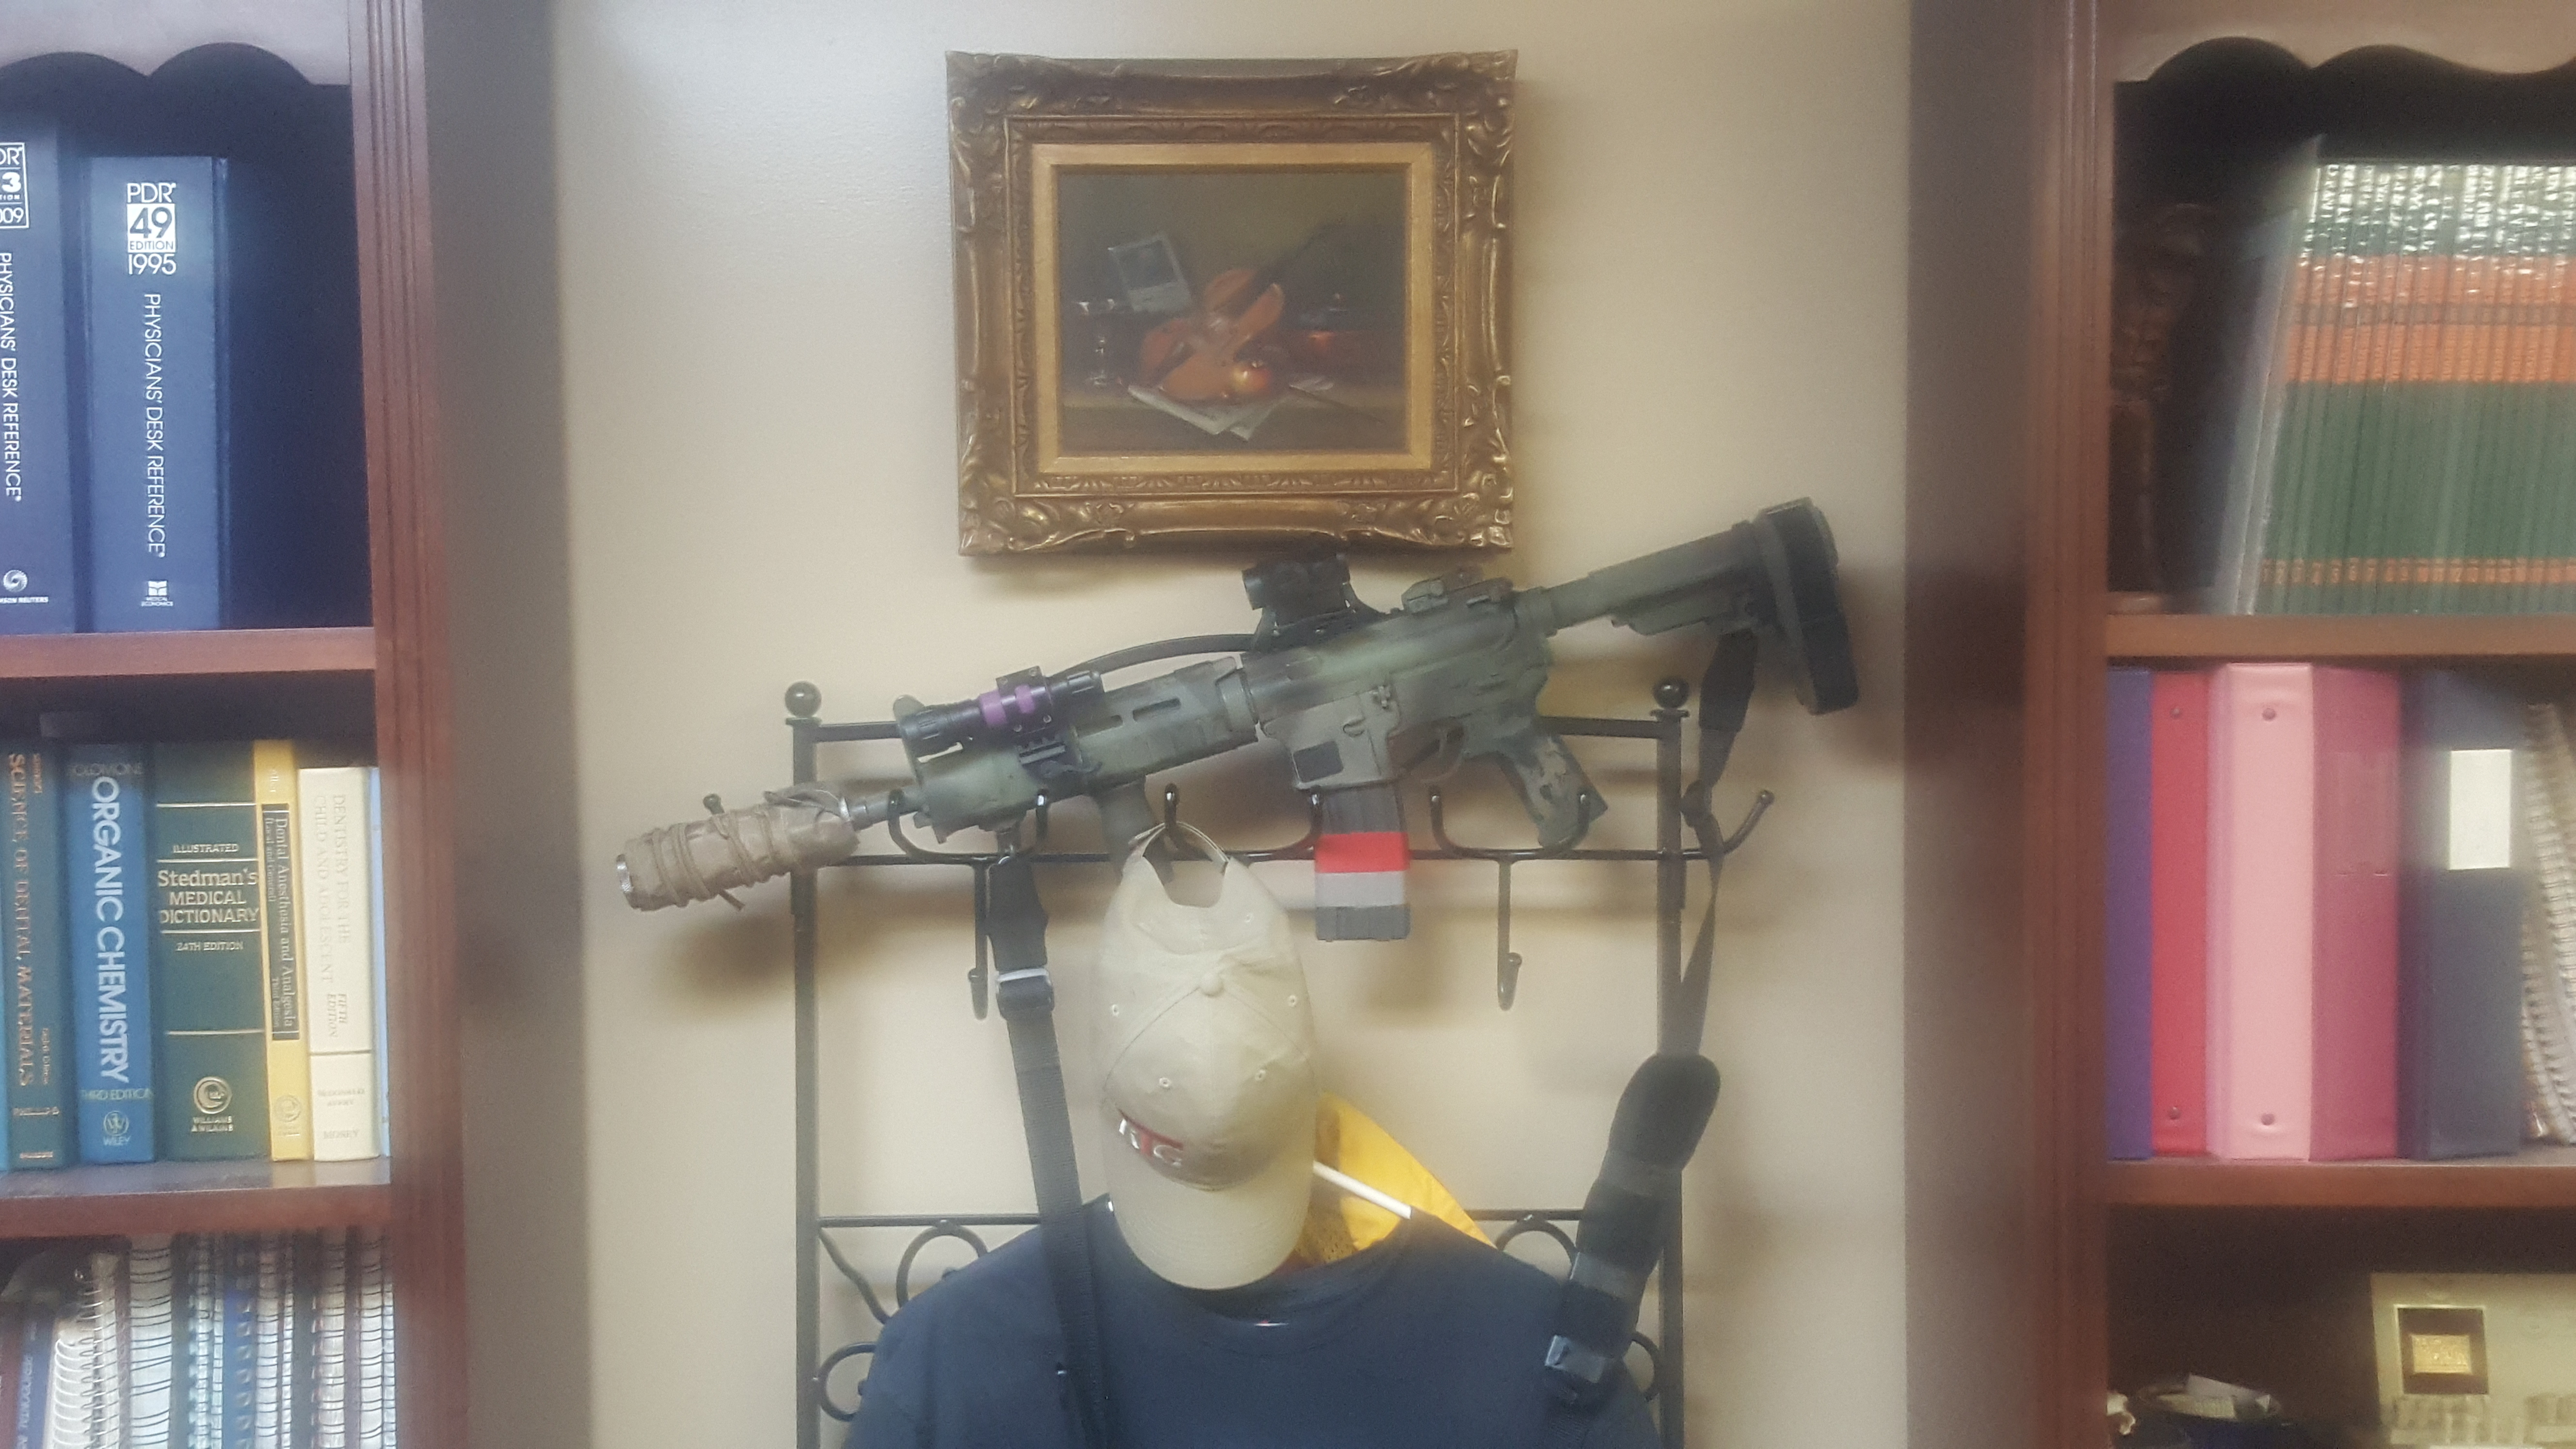 Name:  Mk 18 sd at the Office 2.jpg Views: 8 Size:  3.14 MB